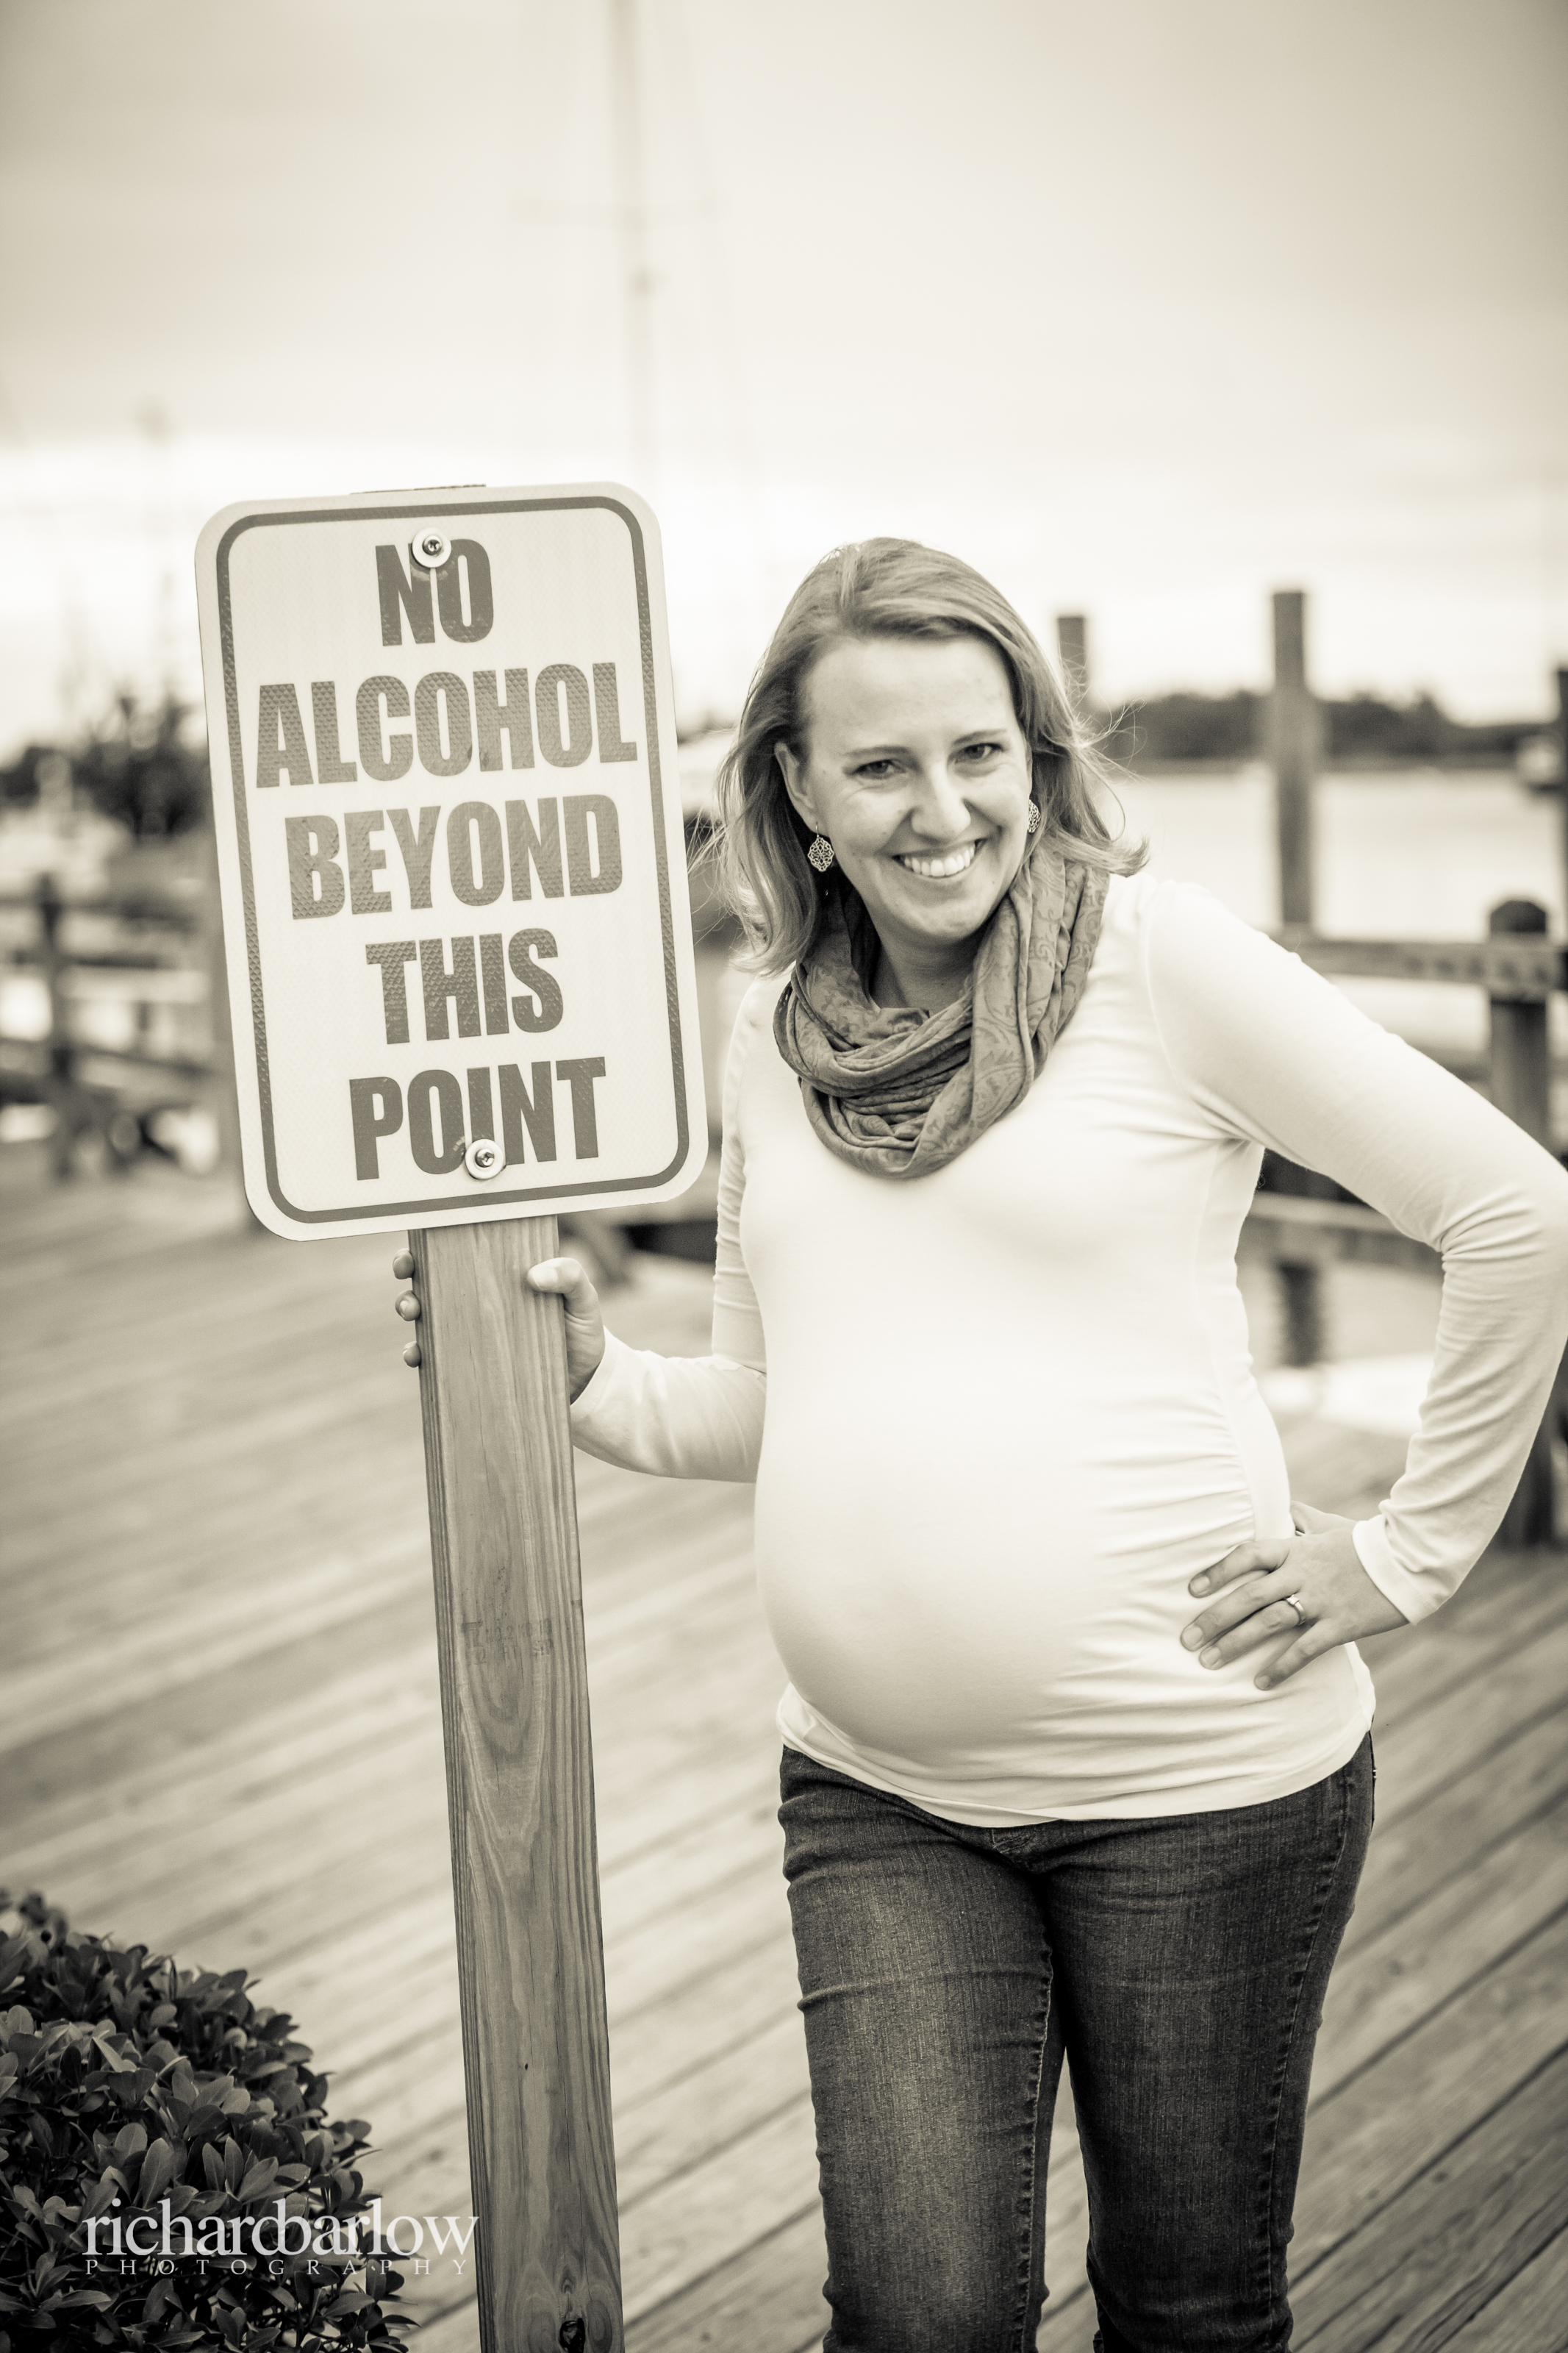 richard barlow photography - Sarah Maternity Session - Beaufort waterfront-19.jpg